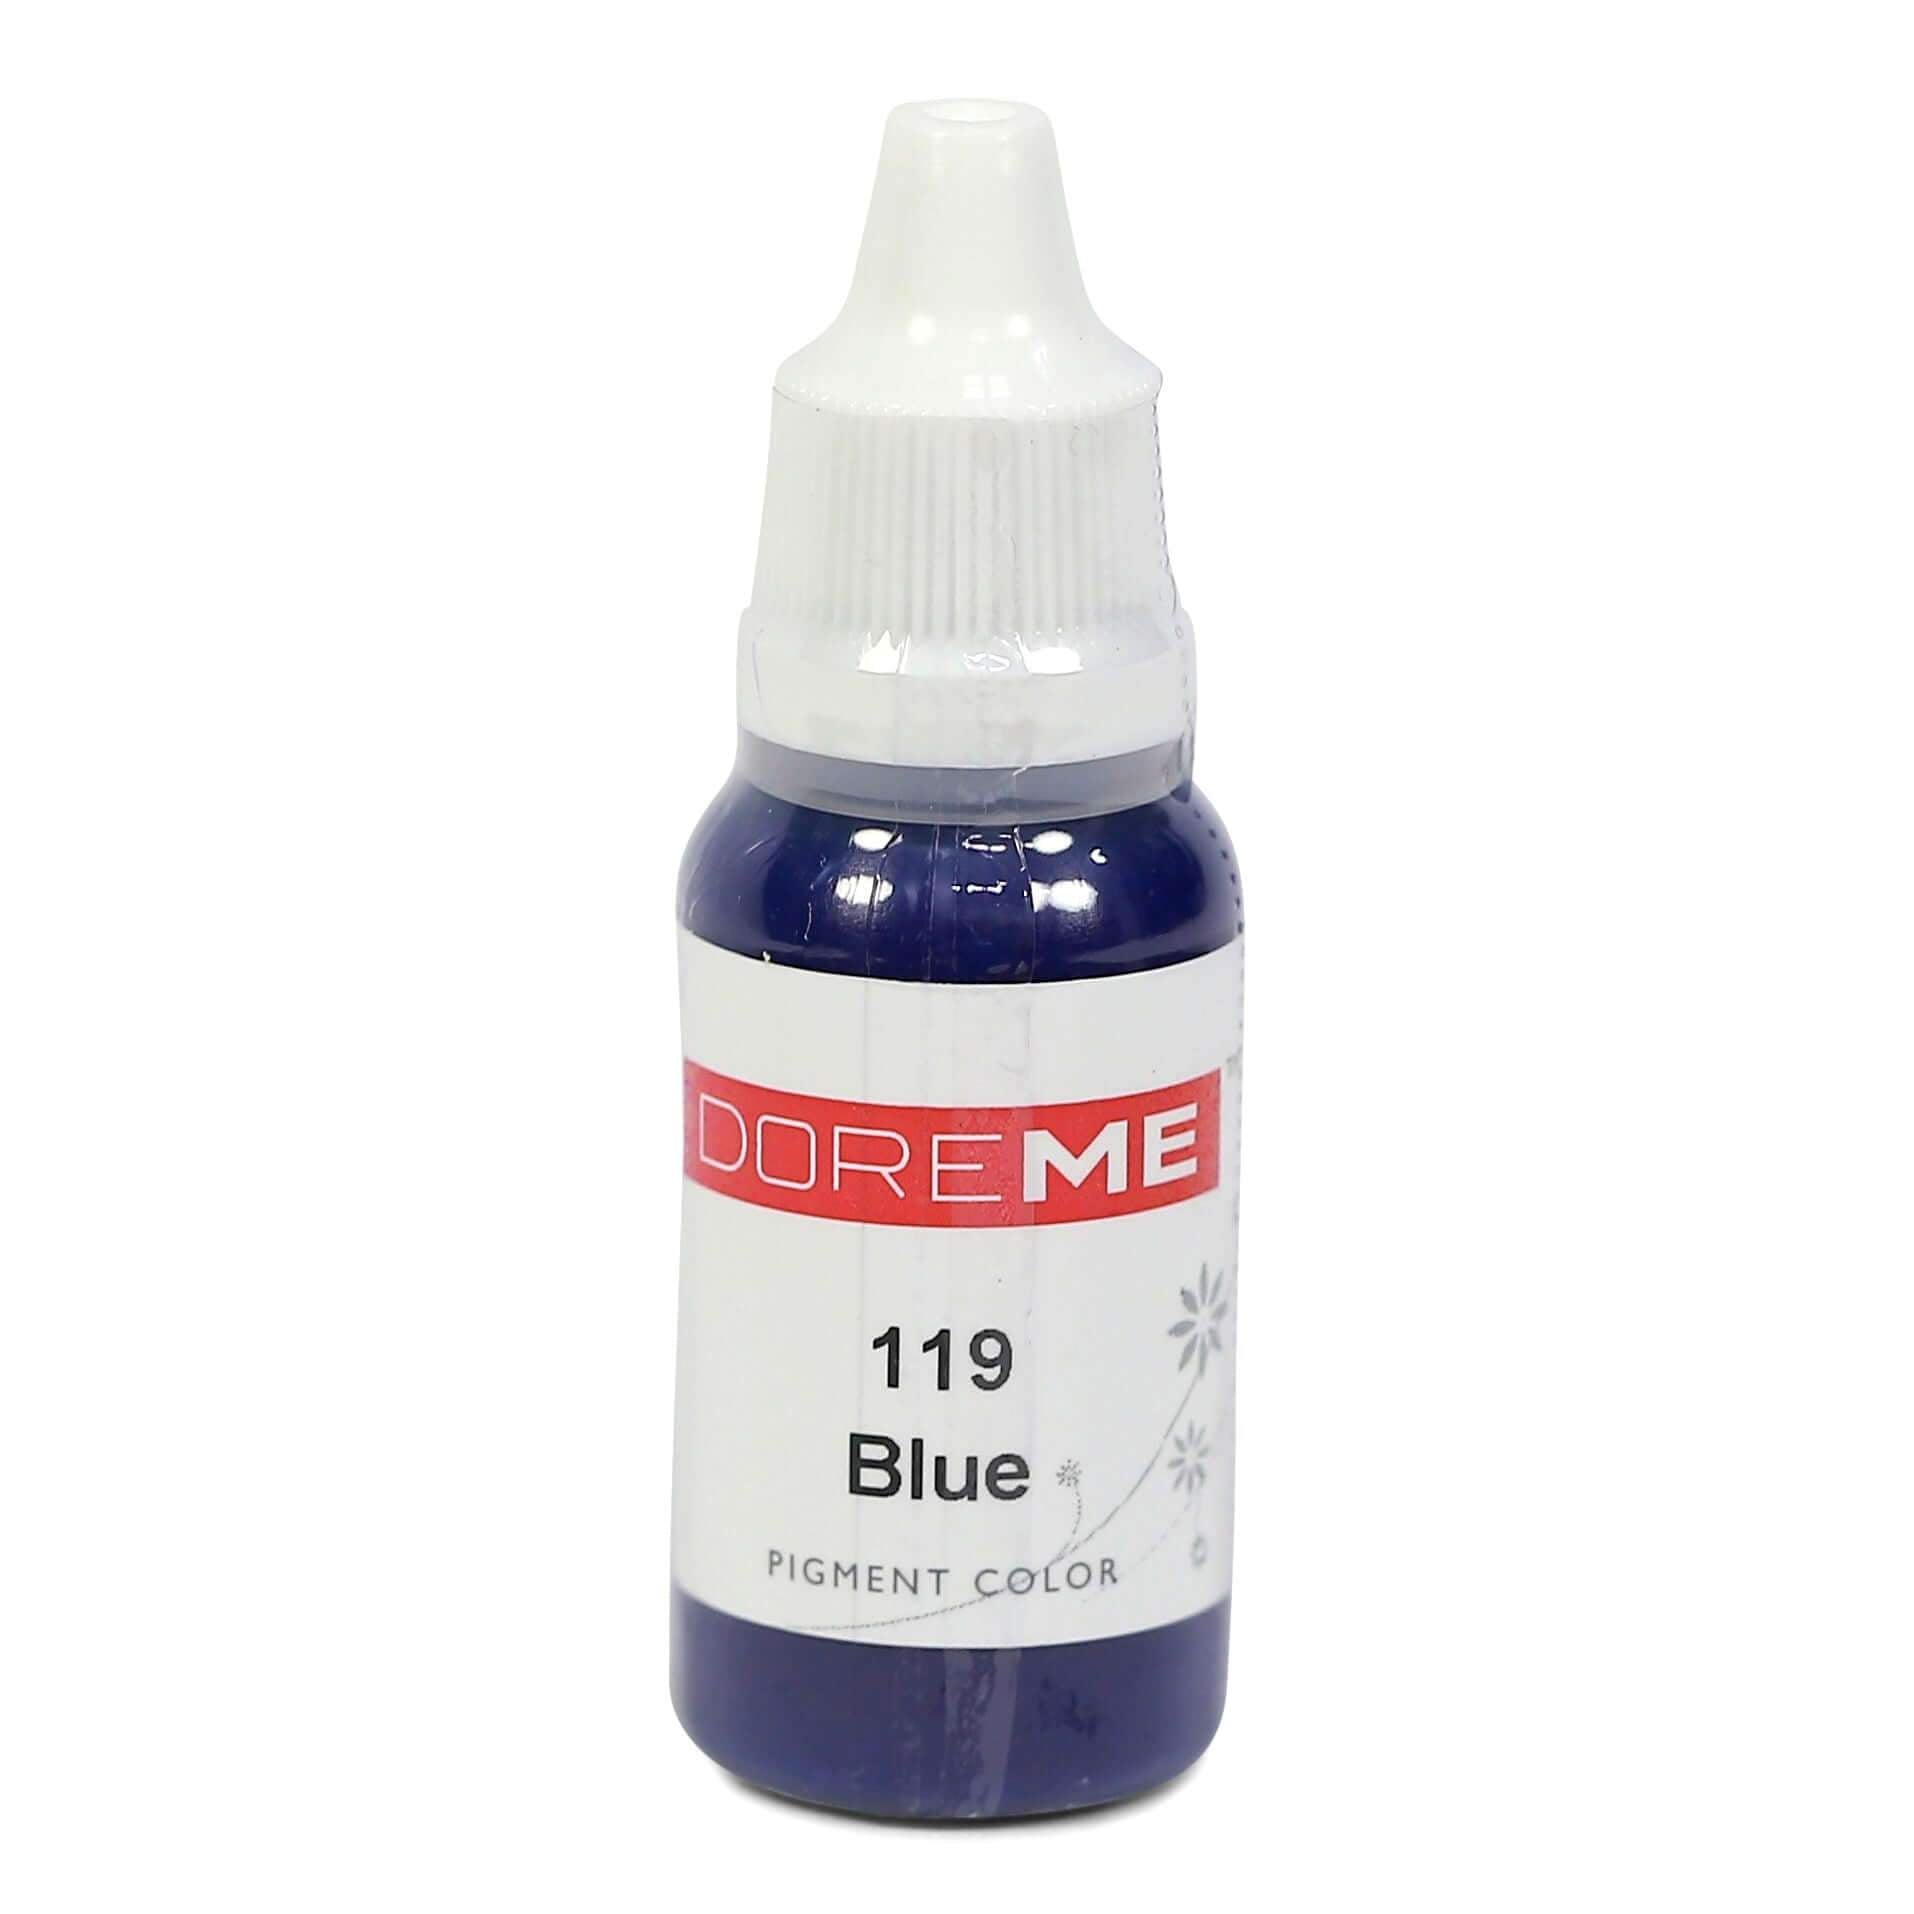 Permanent Makeup pigments Doreme Micropigmentation Eyebrow, Eyeliner, Lip Colours 119 Blue (c) - Beautiful Ink UK trade and wholesale supplier